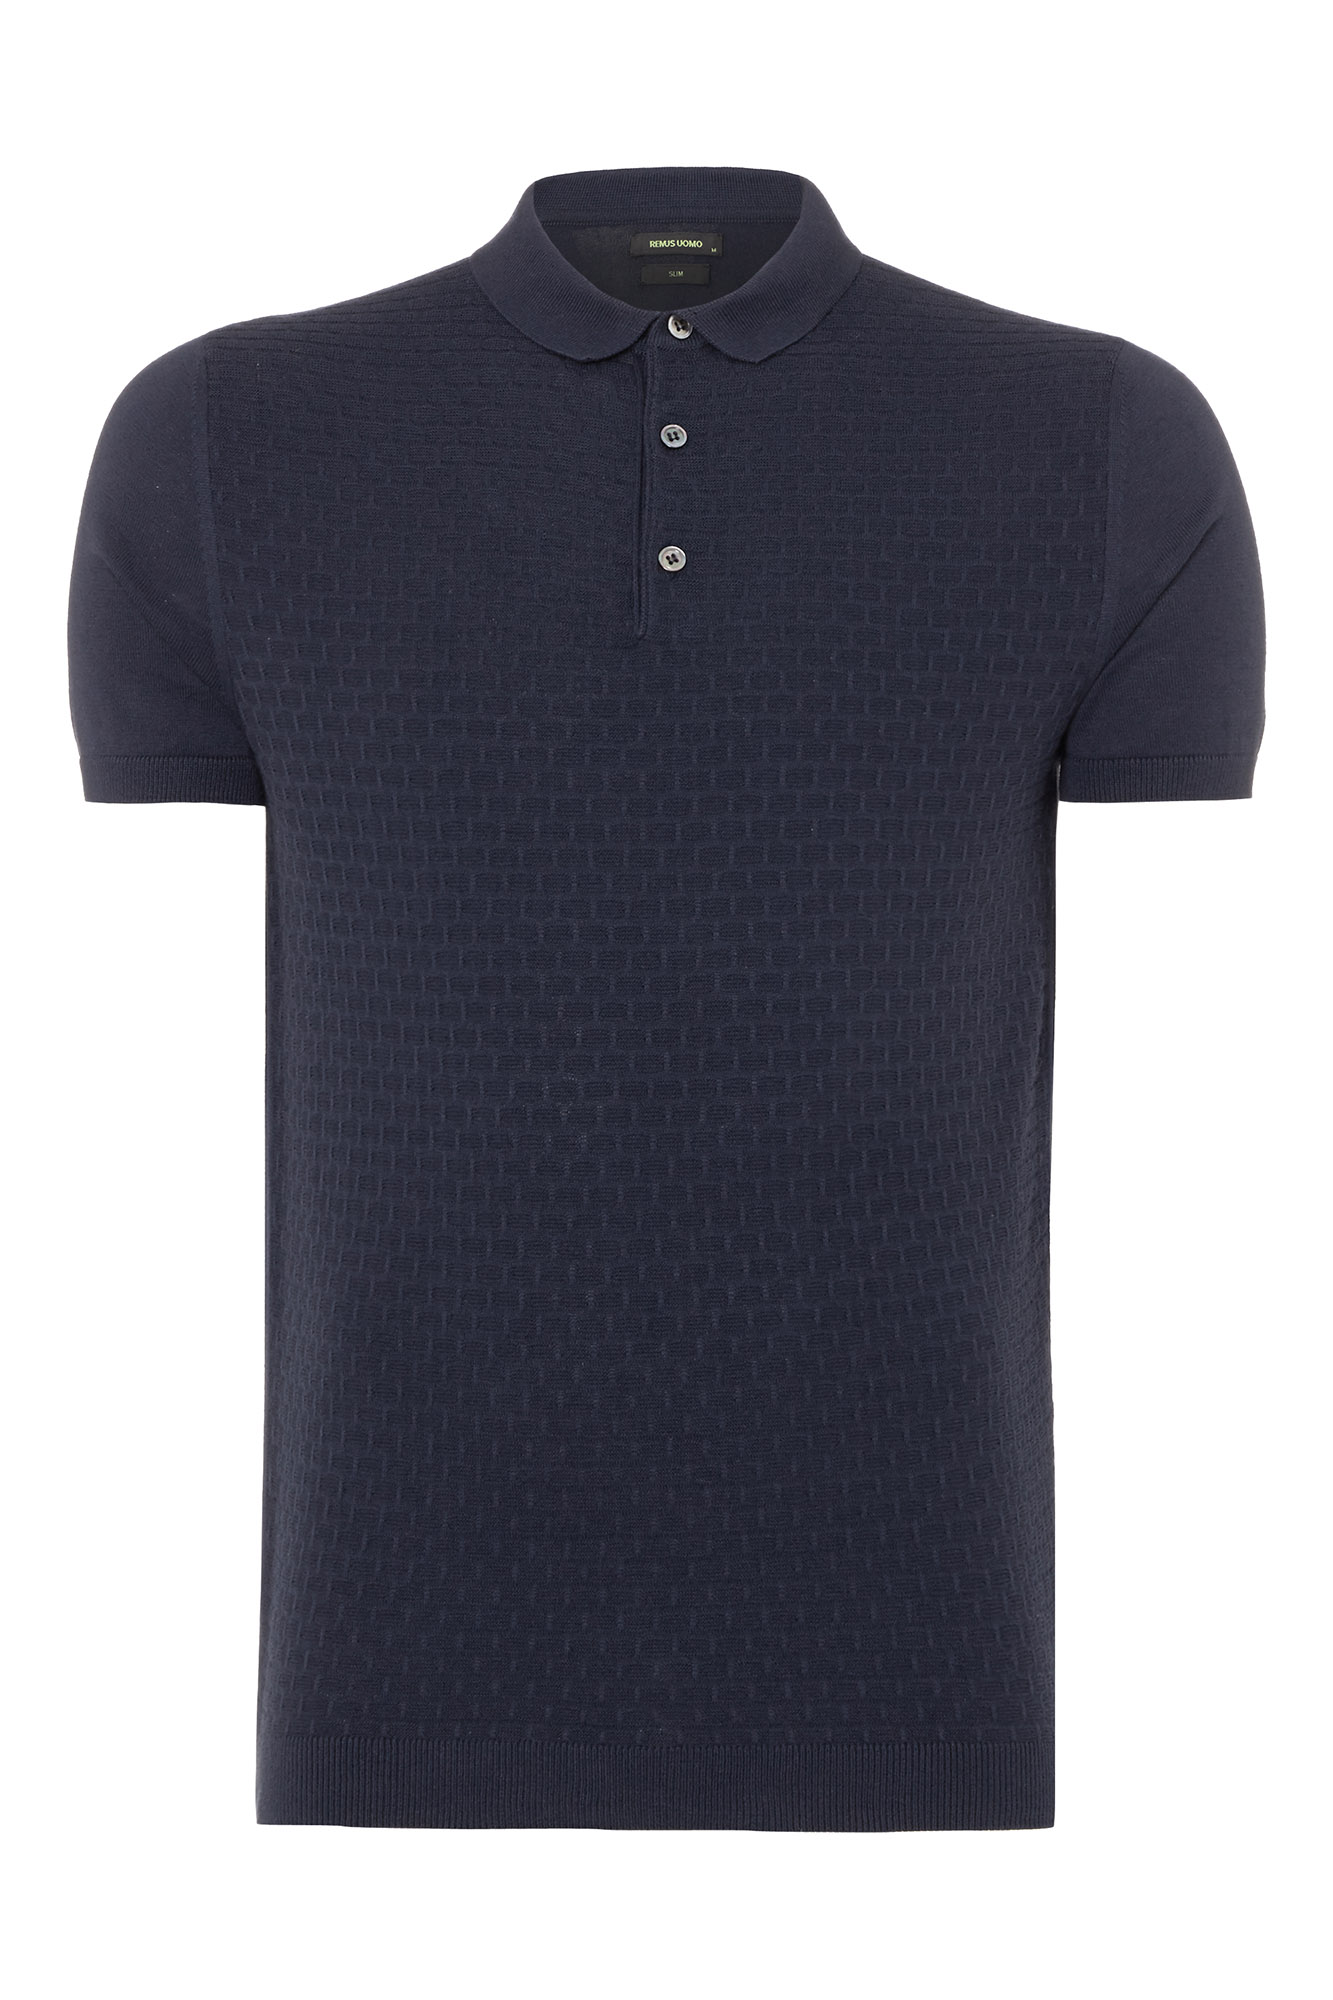 Slim fit knitted cotton polo